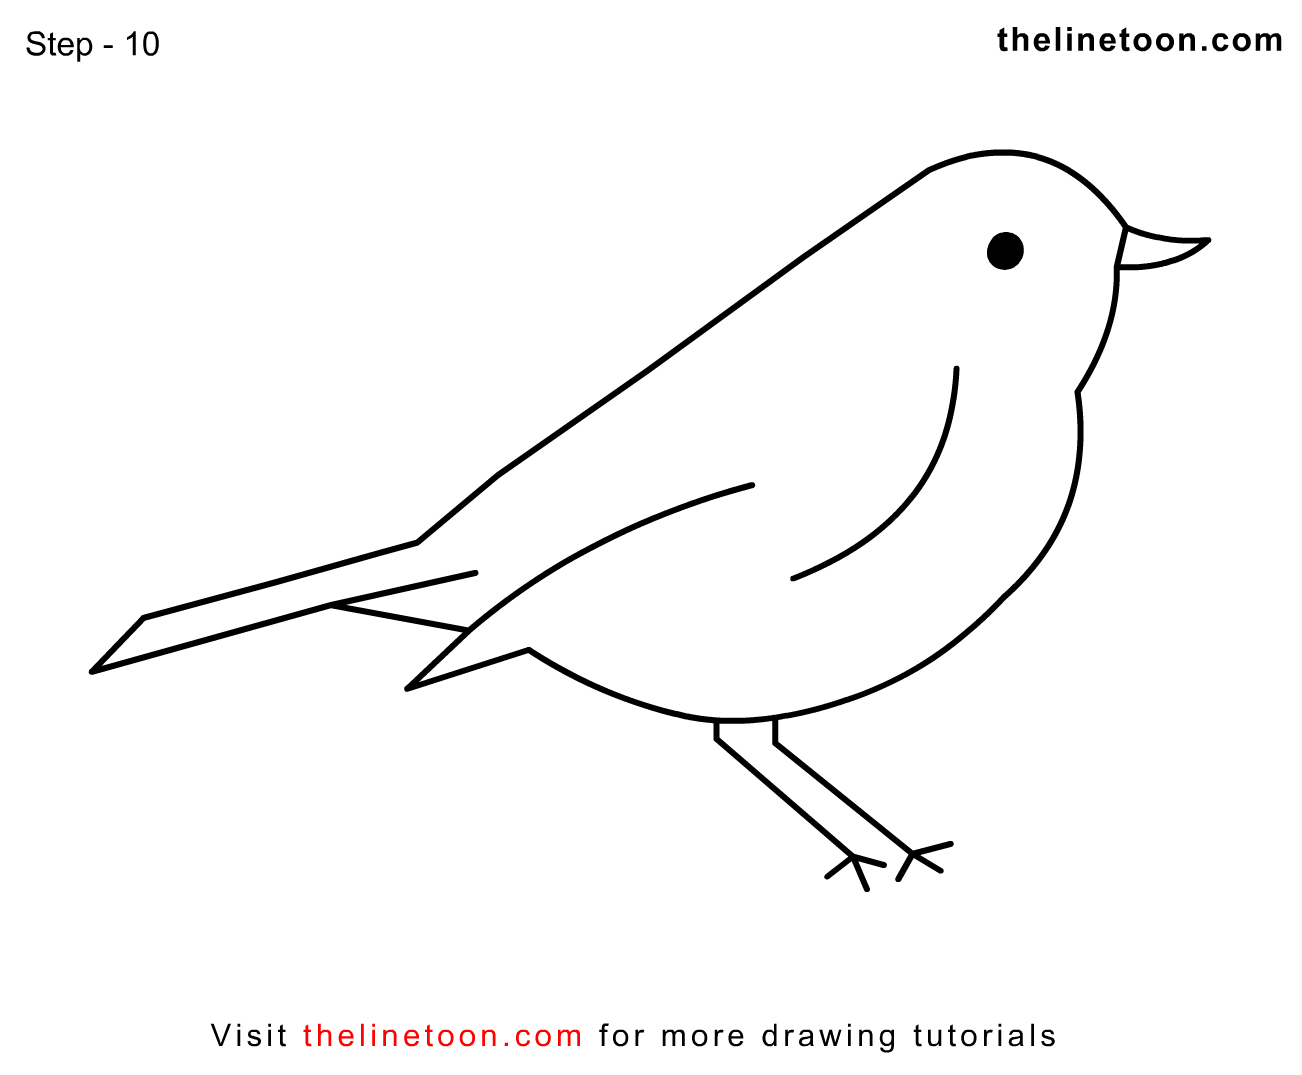 thelinetoon how to draw bird easy simple for kids step by step